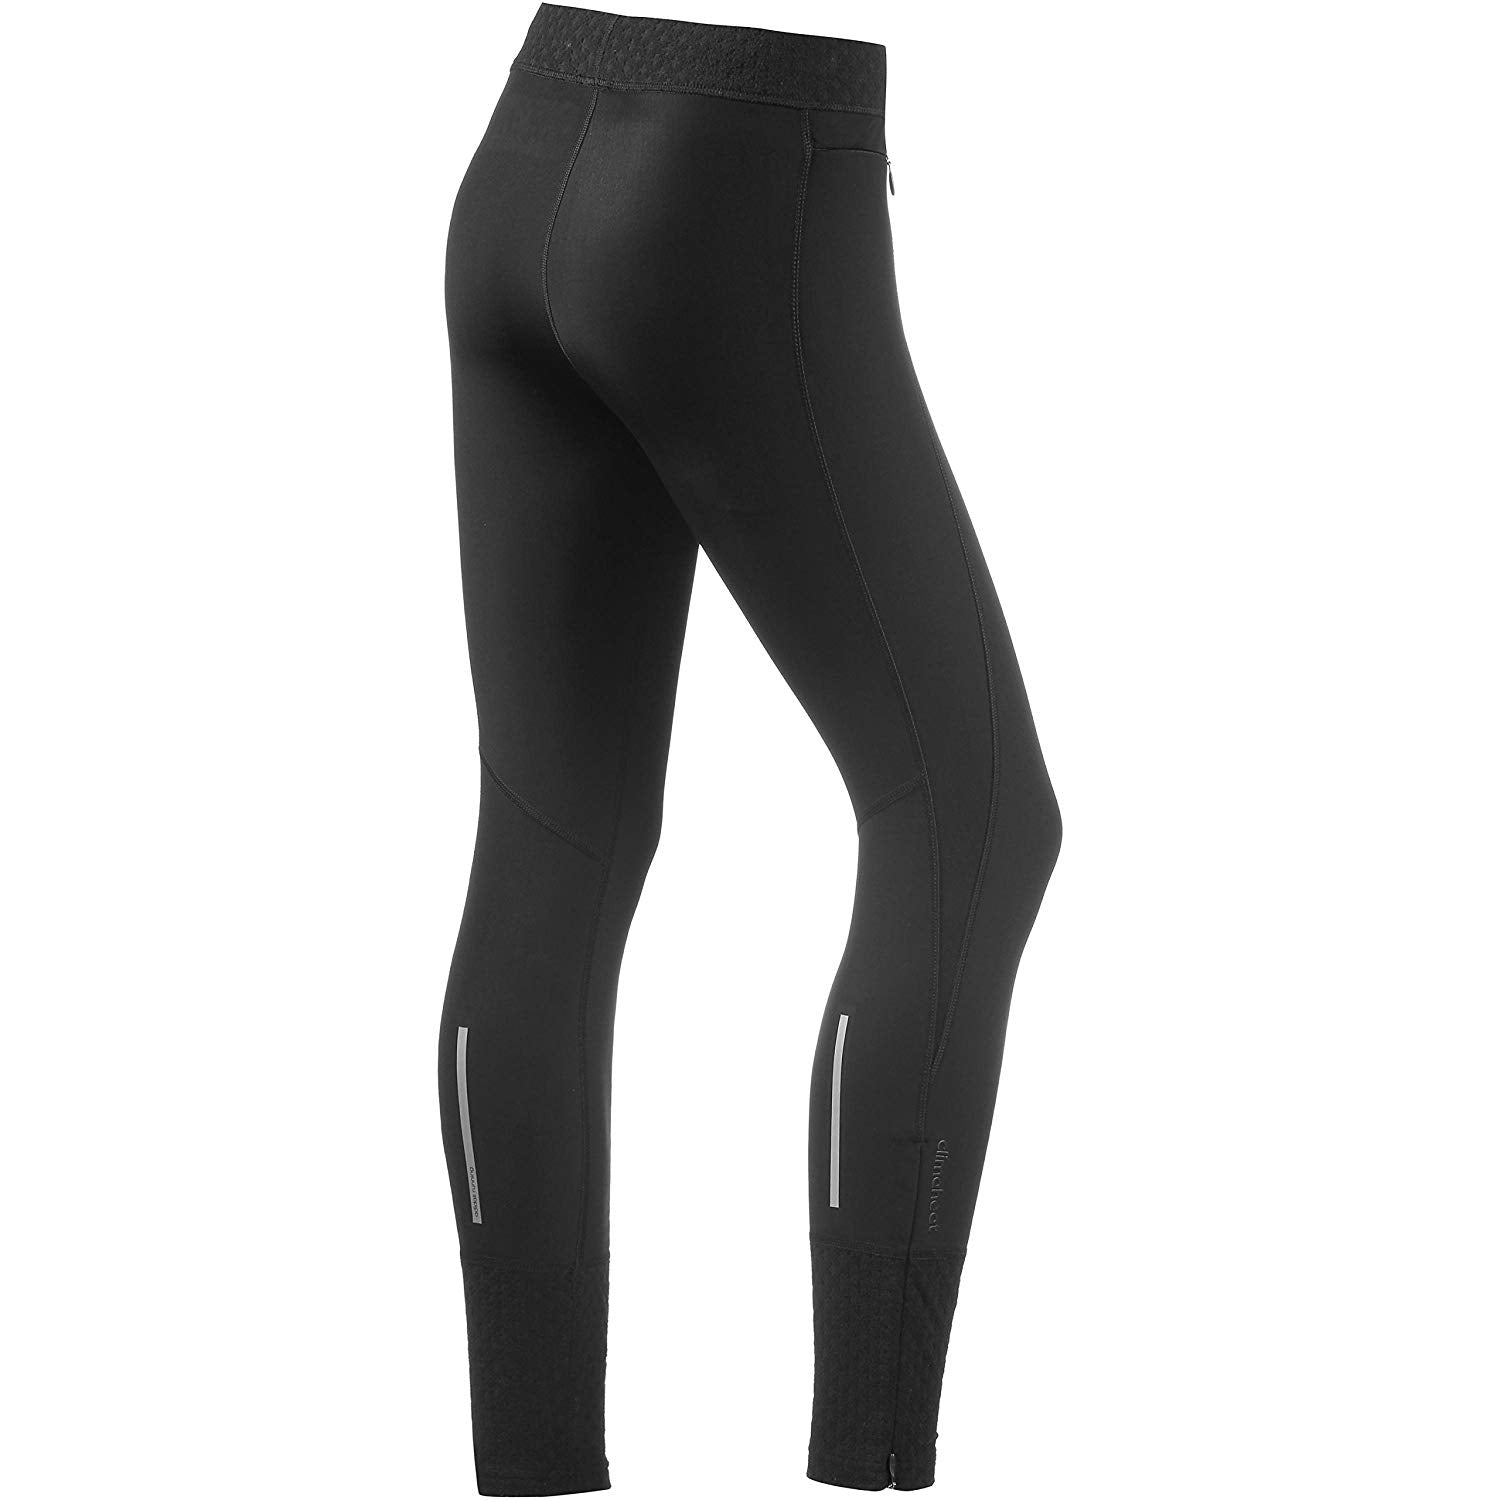 Adidas Clima Heat Ladies Outerwear Long Tights Black Large